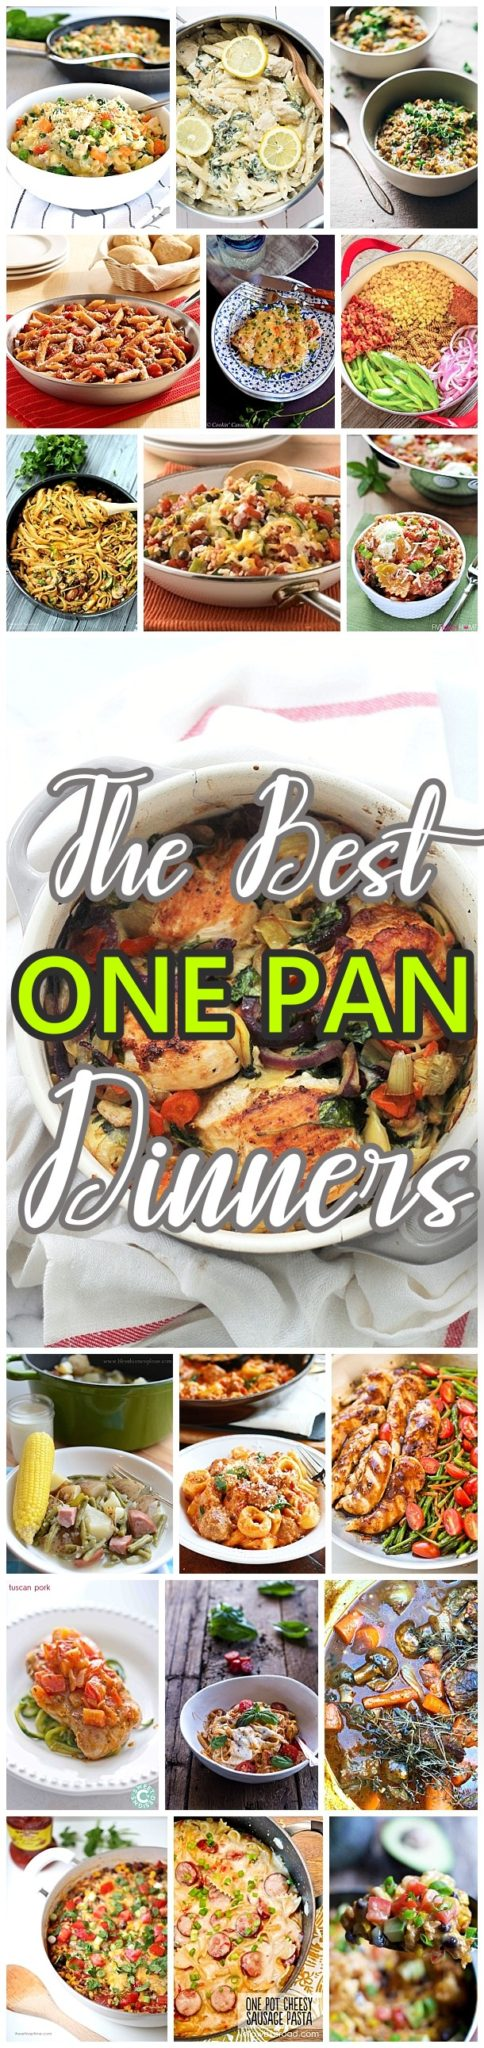 The BEST Easy and Delicious ONE POT Recipes - We've got BEEF, CHICKEN, PORK and VEGETABLE options - something for everyone! Make amazing lunch and dinner meals for your family with less cleanup! Perfect for busy weeknights or anytime you want to make a quick and hearty homemade meal recipe using just ONE pan. - Dreaming in DIY #onepotmeals #onepanmeals #onepotrecipes #onepanrecipes #onepot #onepotdinners #onepotlunches #onepotsuppers